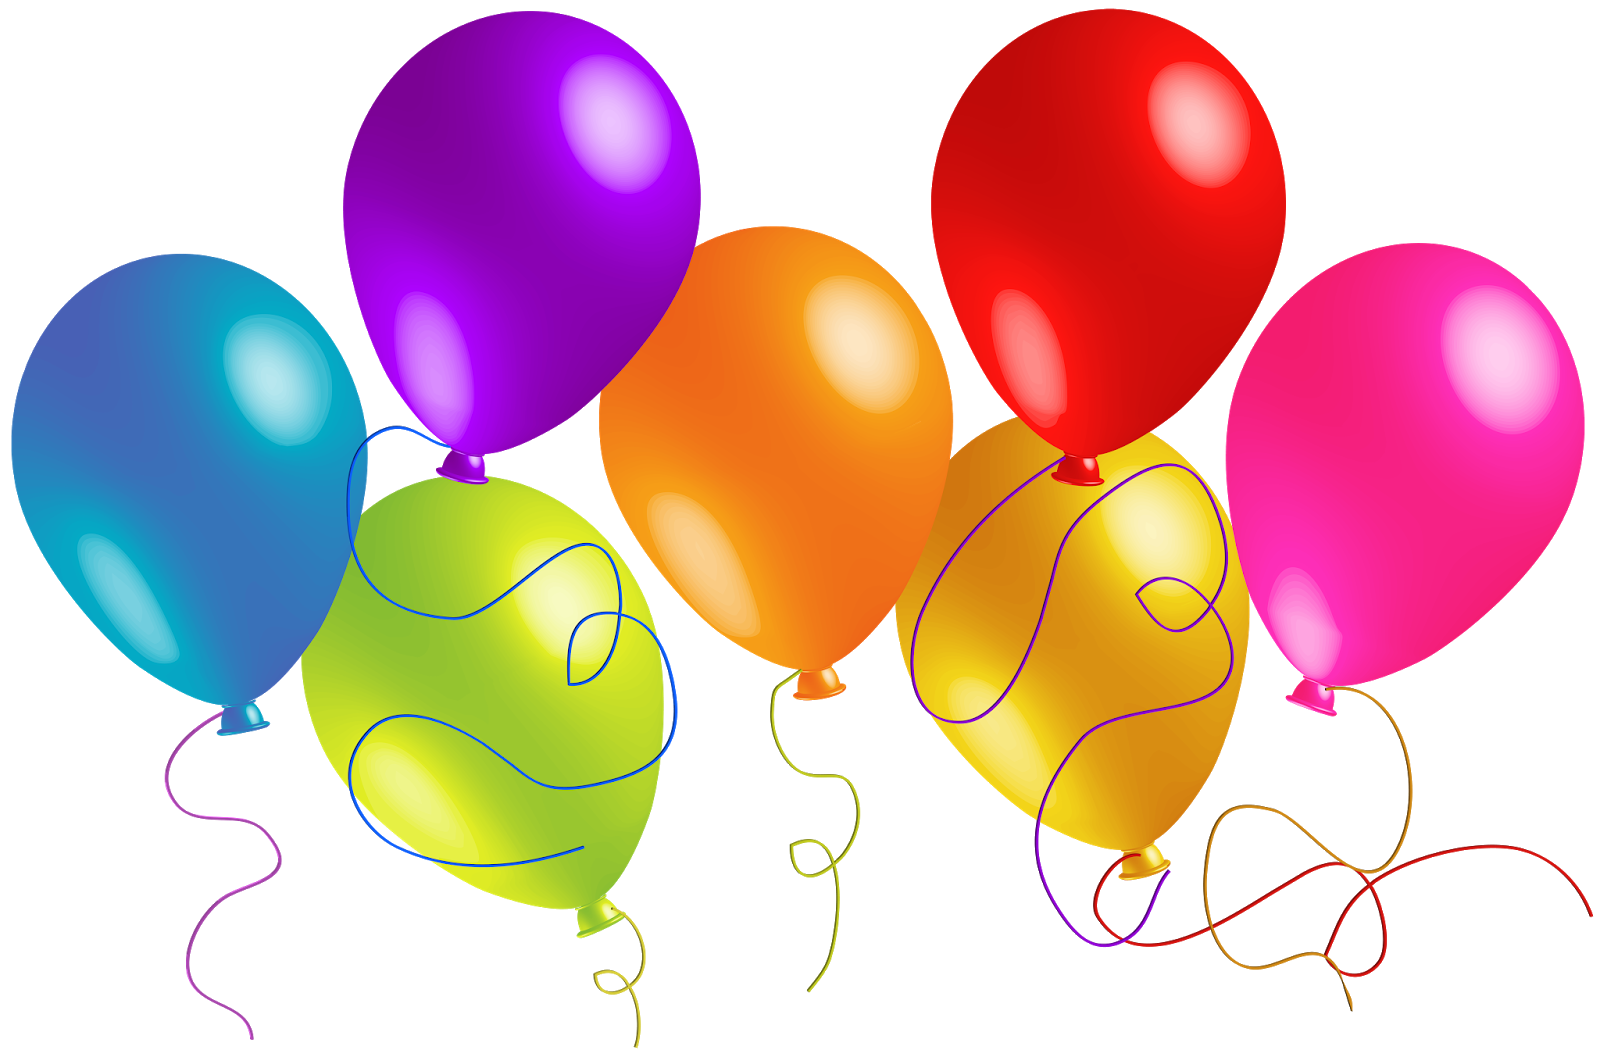 Happy office work anniversary images, quotes, sayings cartoons.